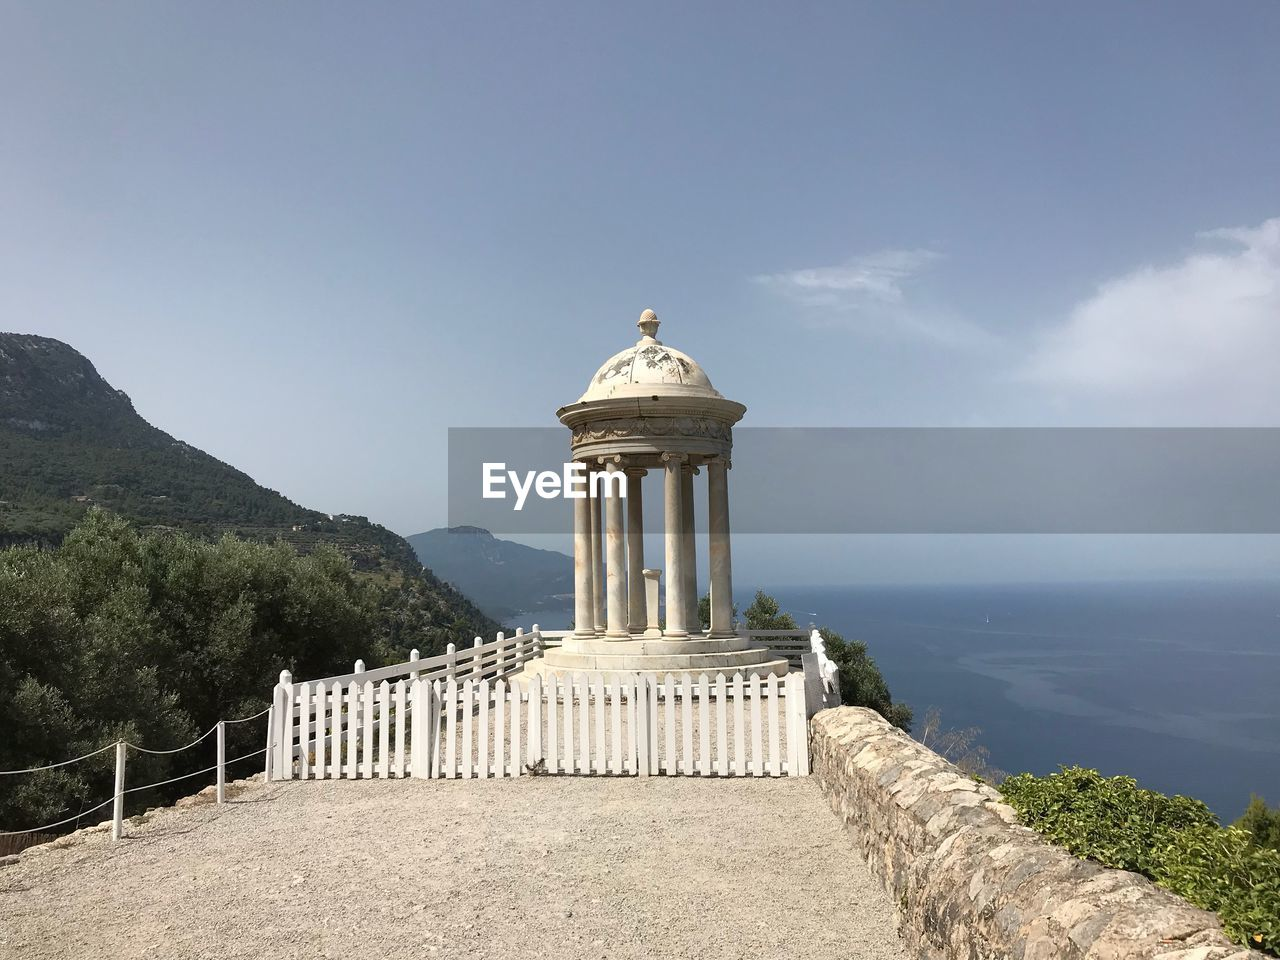 sky, architecture, built structure, nature, travel destinations, day, the past, building exterior, history, scenics - nature, sea, mountain, no people, beauty in nature, architectural column, water, tourism, guidance, direction, tranquility, lighthouse, outdoors